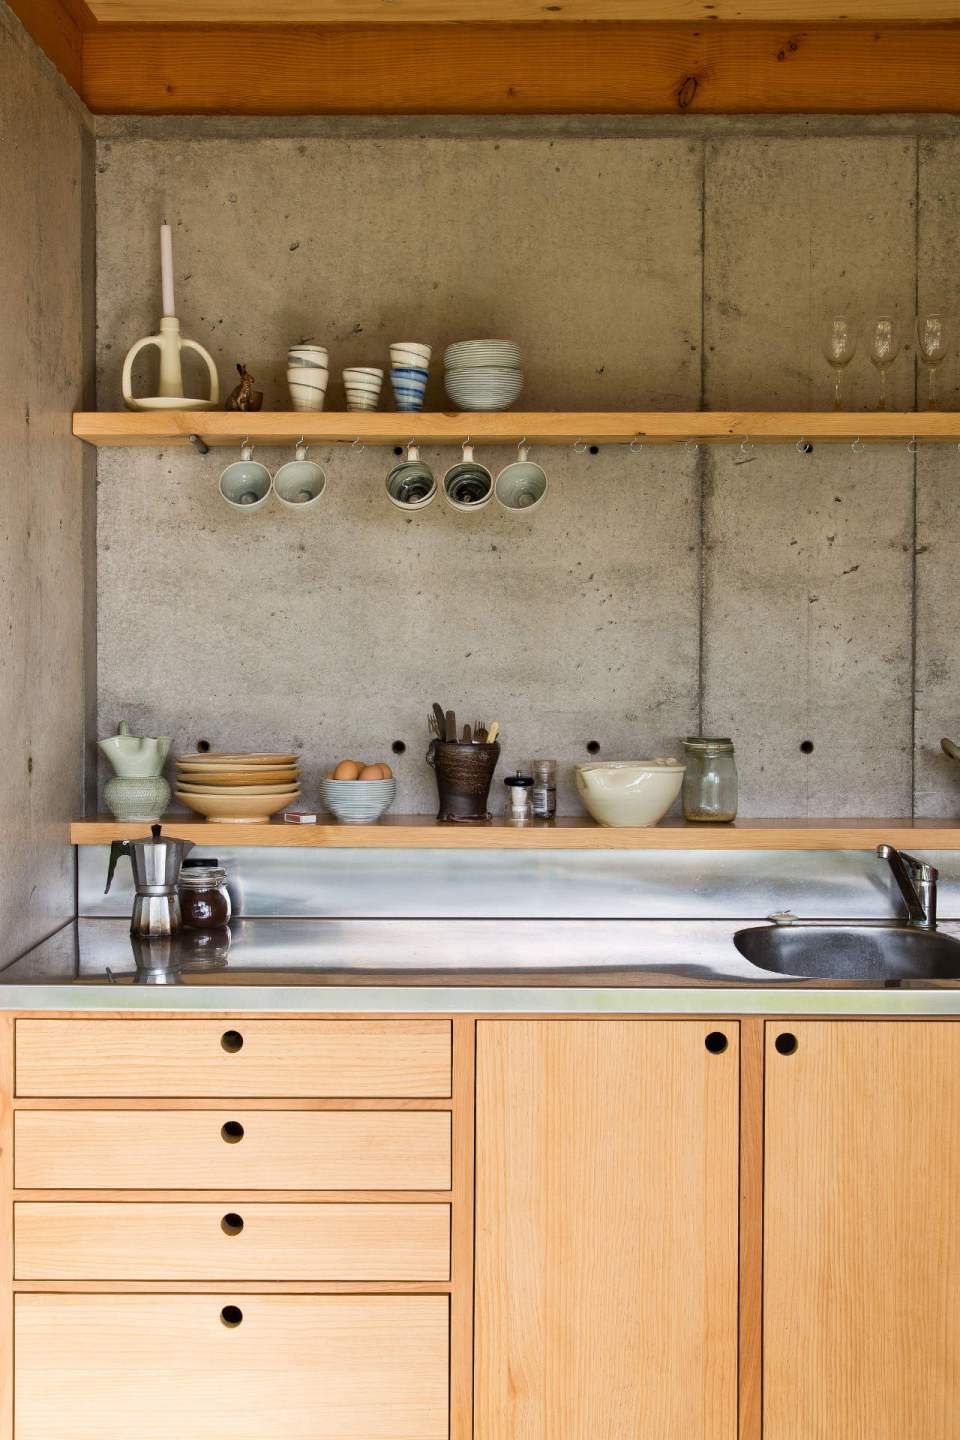 The Dogbox A Small Affordable House Designed And Built By Three Recent New Zealand Architecture Grads It Has 2 Bedrooms In 947 Sq Ft Plywood Kitchen Kitchen Interior Kitchen Design